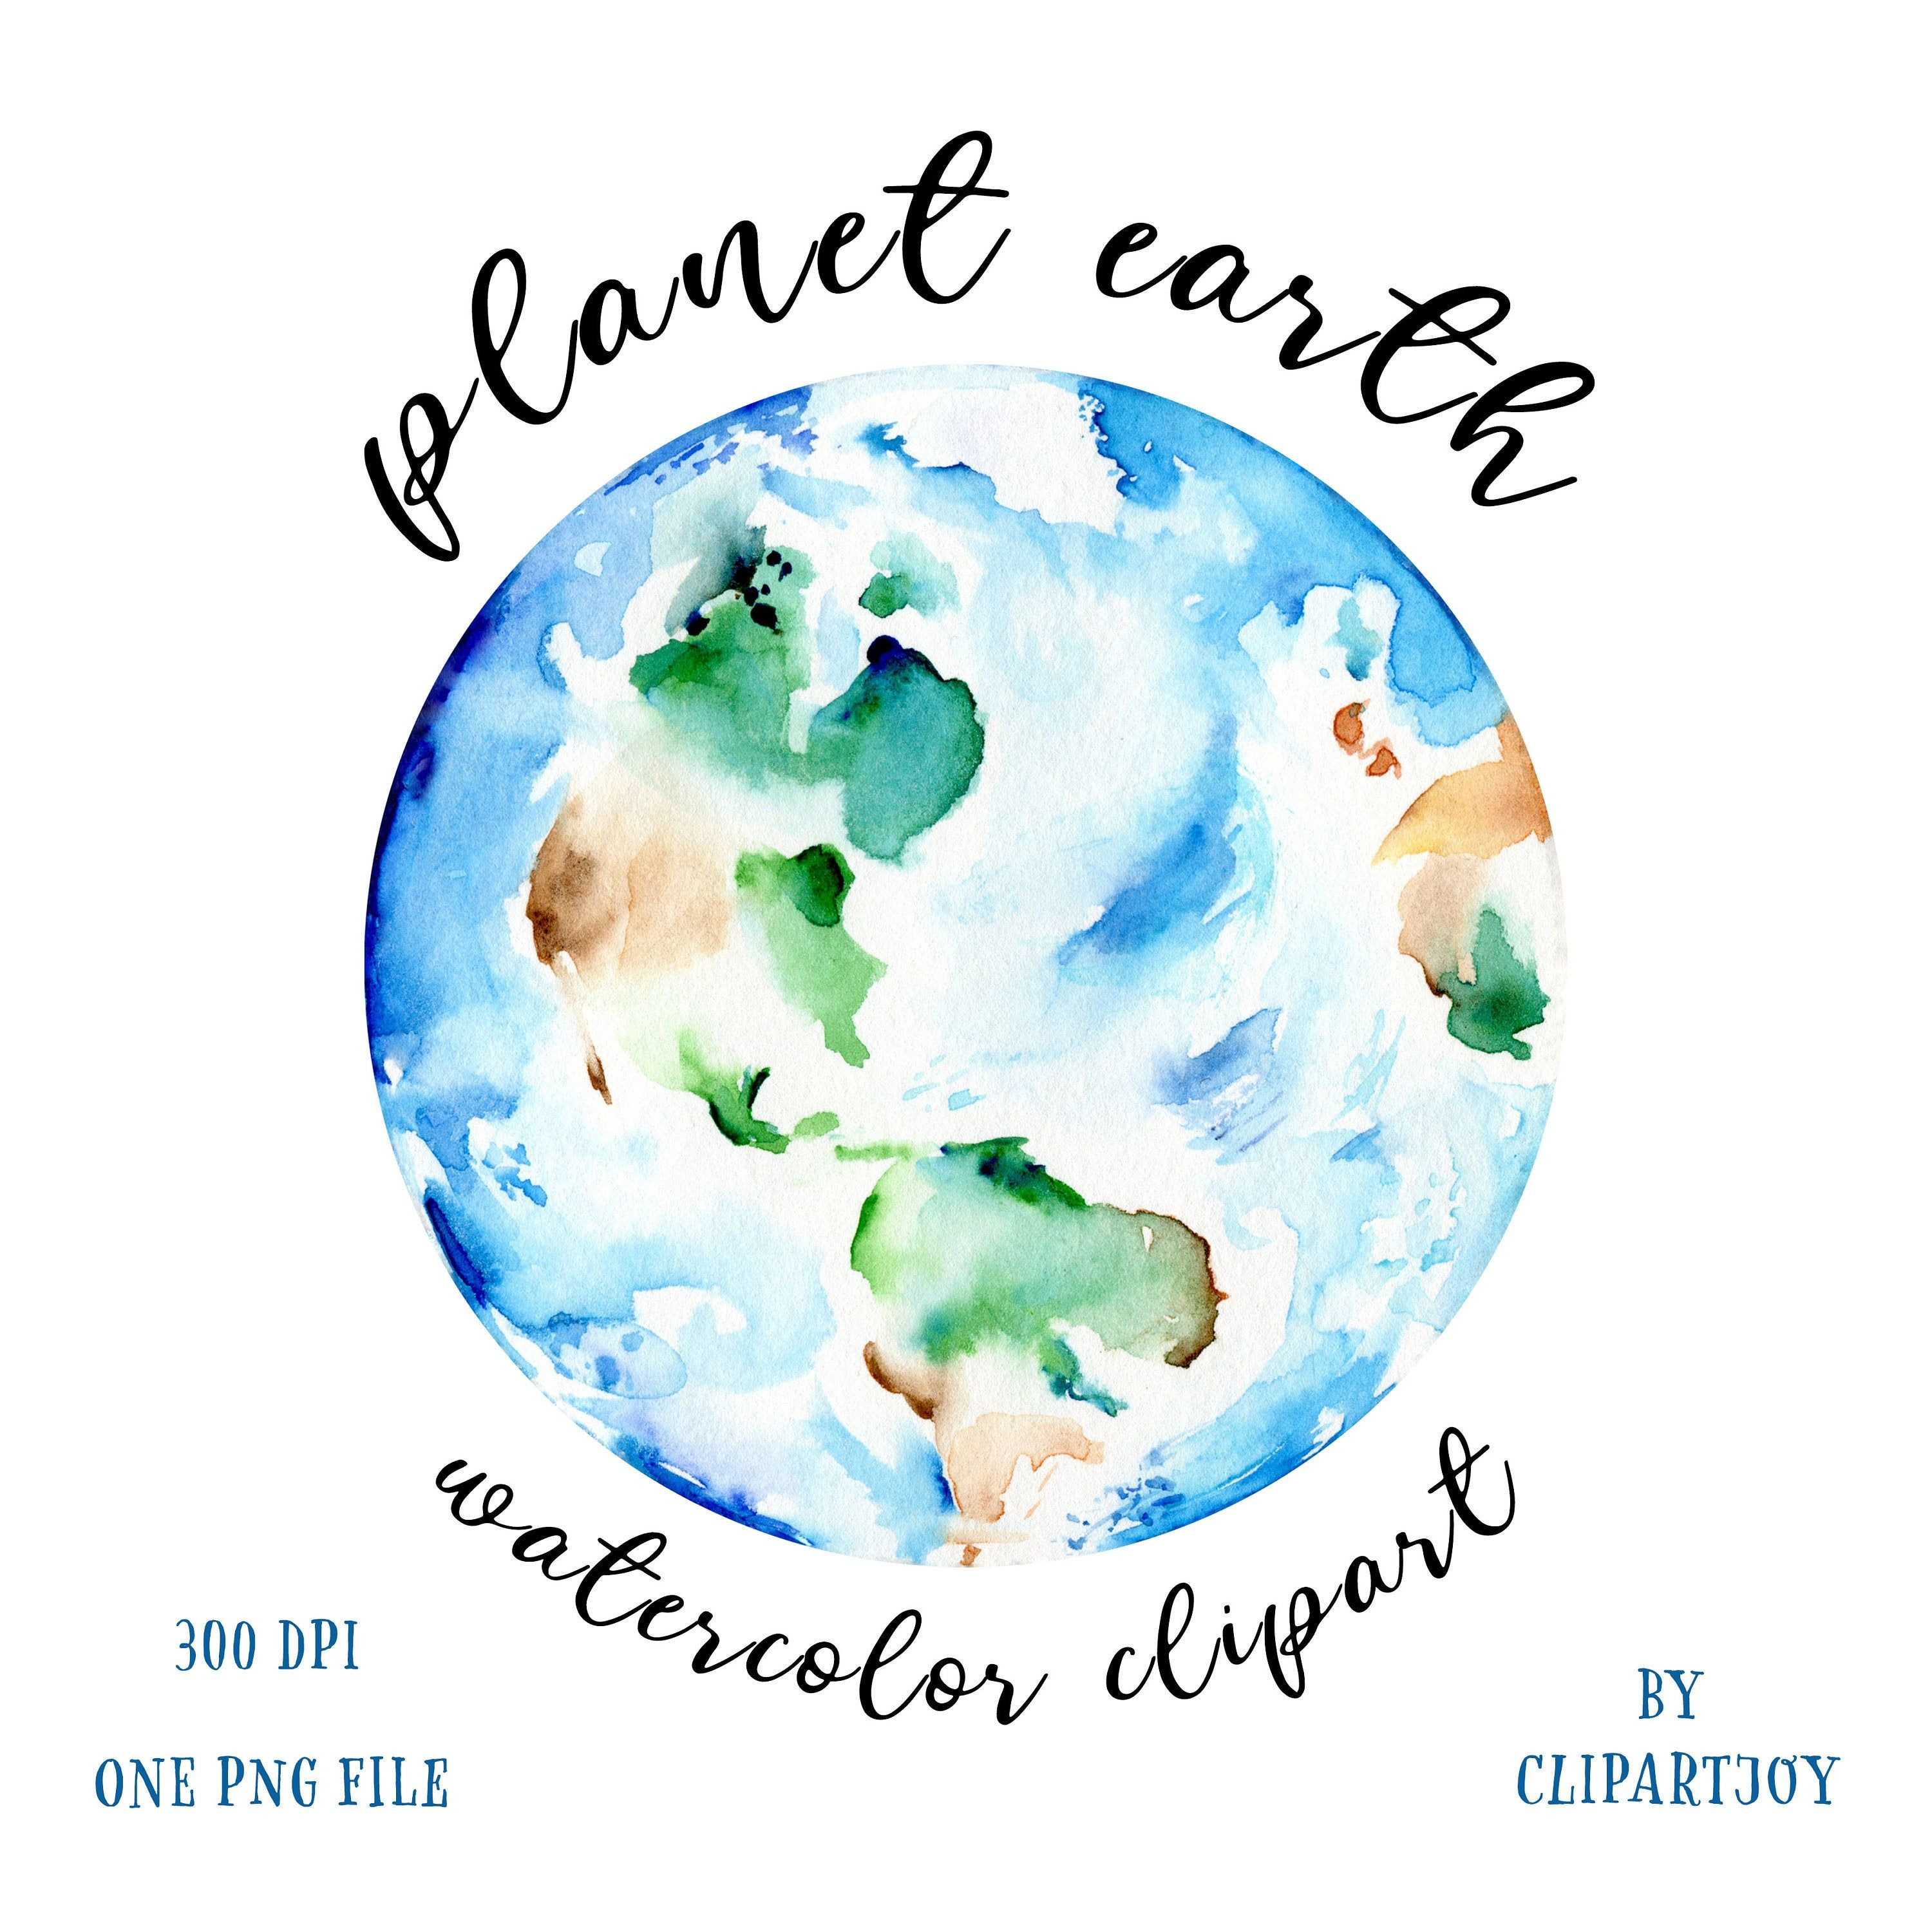 Earth Clipart Watercolor Graphic Of Globe Handpainted Artwork Of Planet Earth Png Digital Download Commercial Use In 2020 Watercolor Graphic Earth Clipart Clip Art